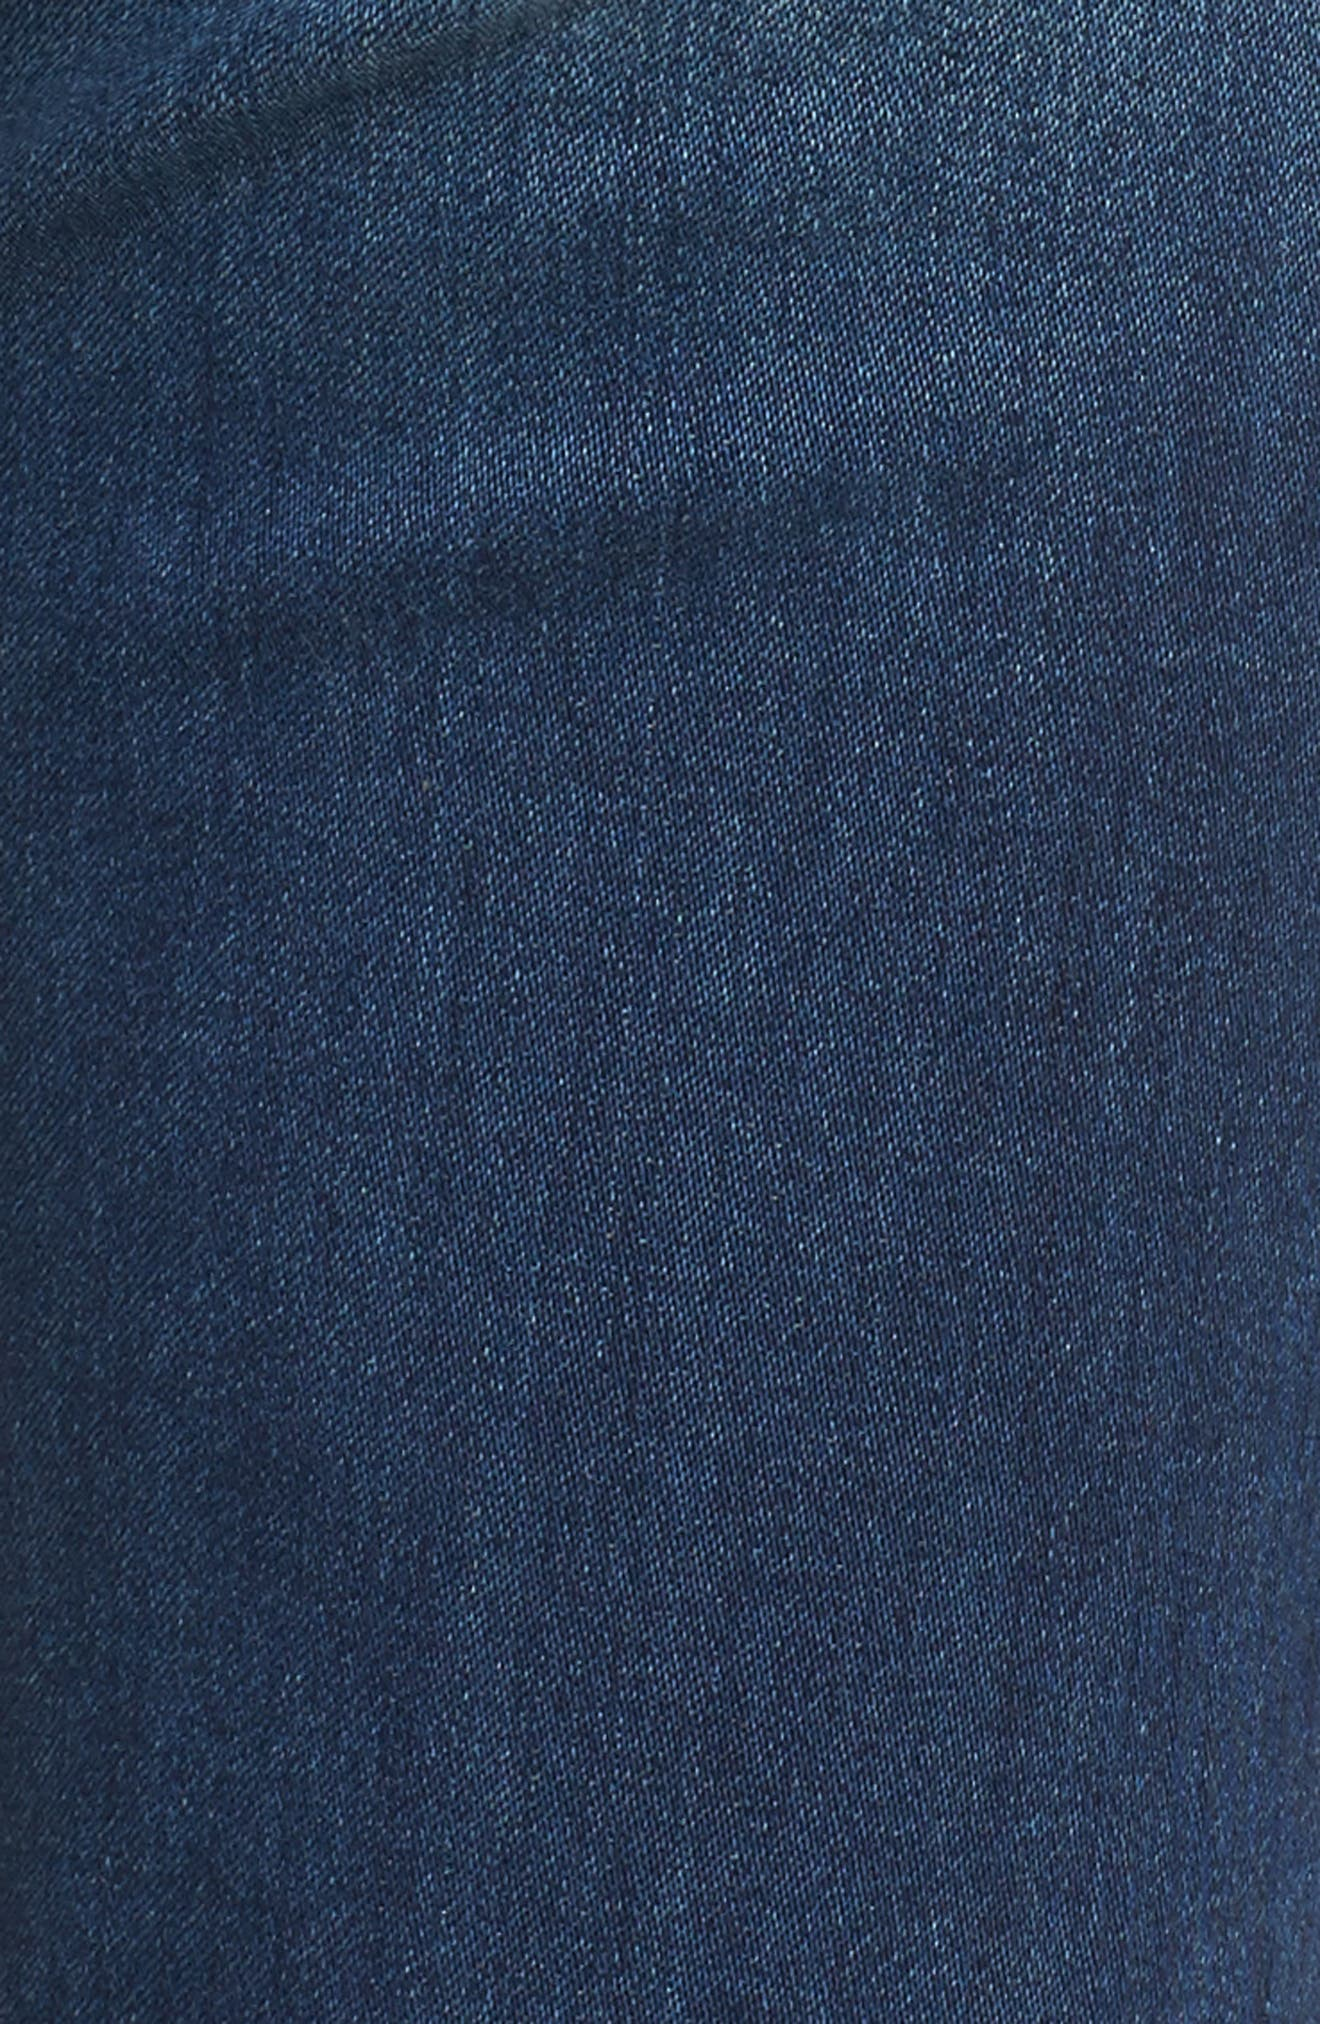 Alternate Image 5  - NYDJ Marilyn Stretch Straight Leg Jeans (Anson)